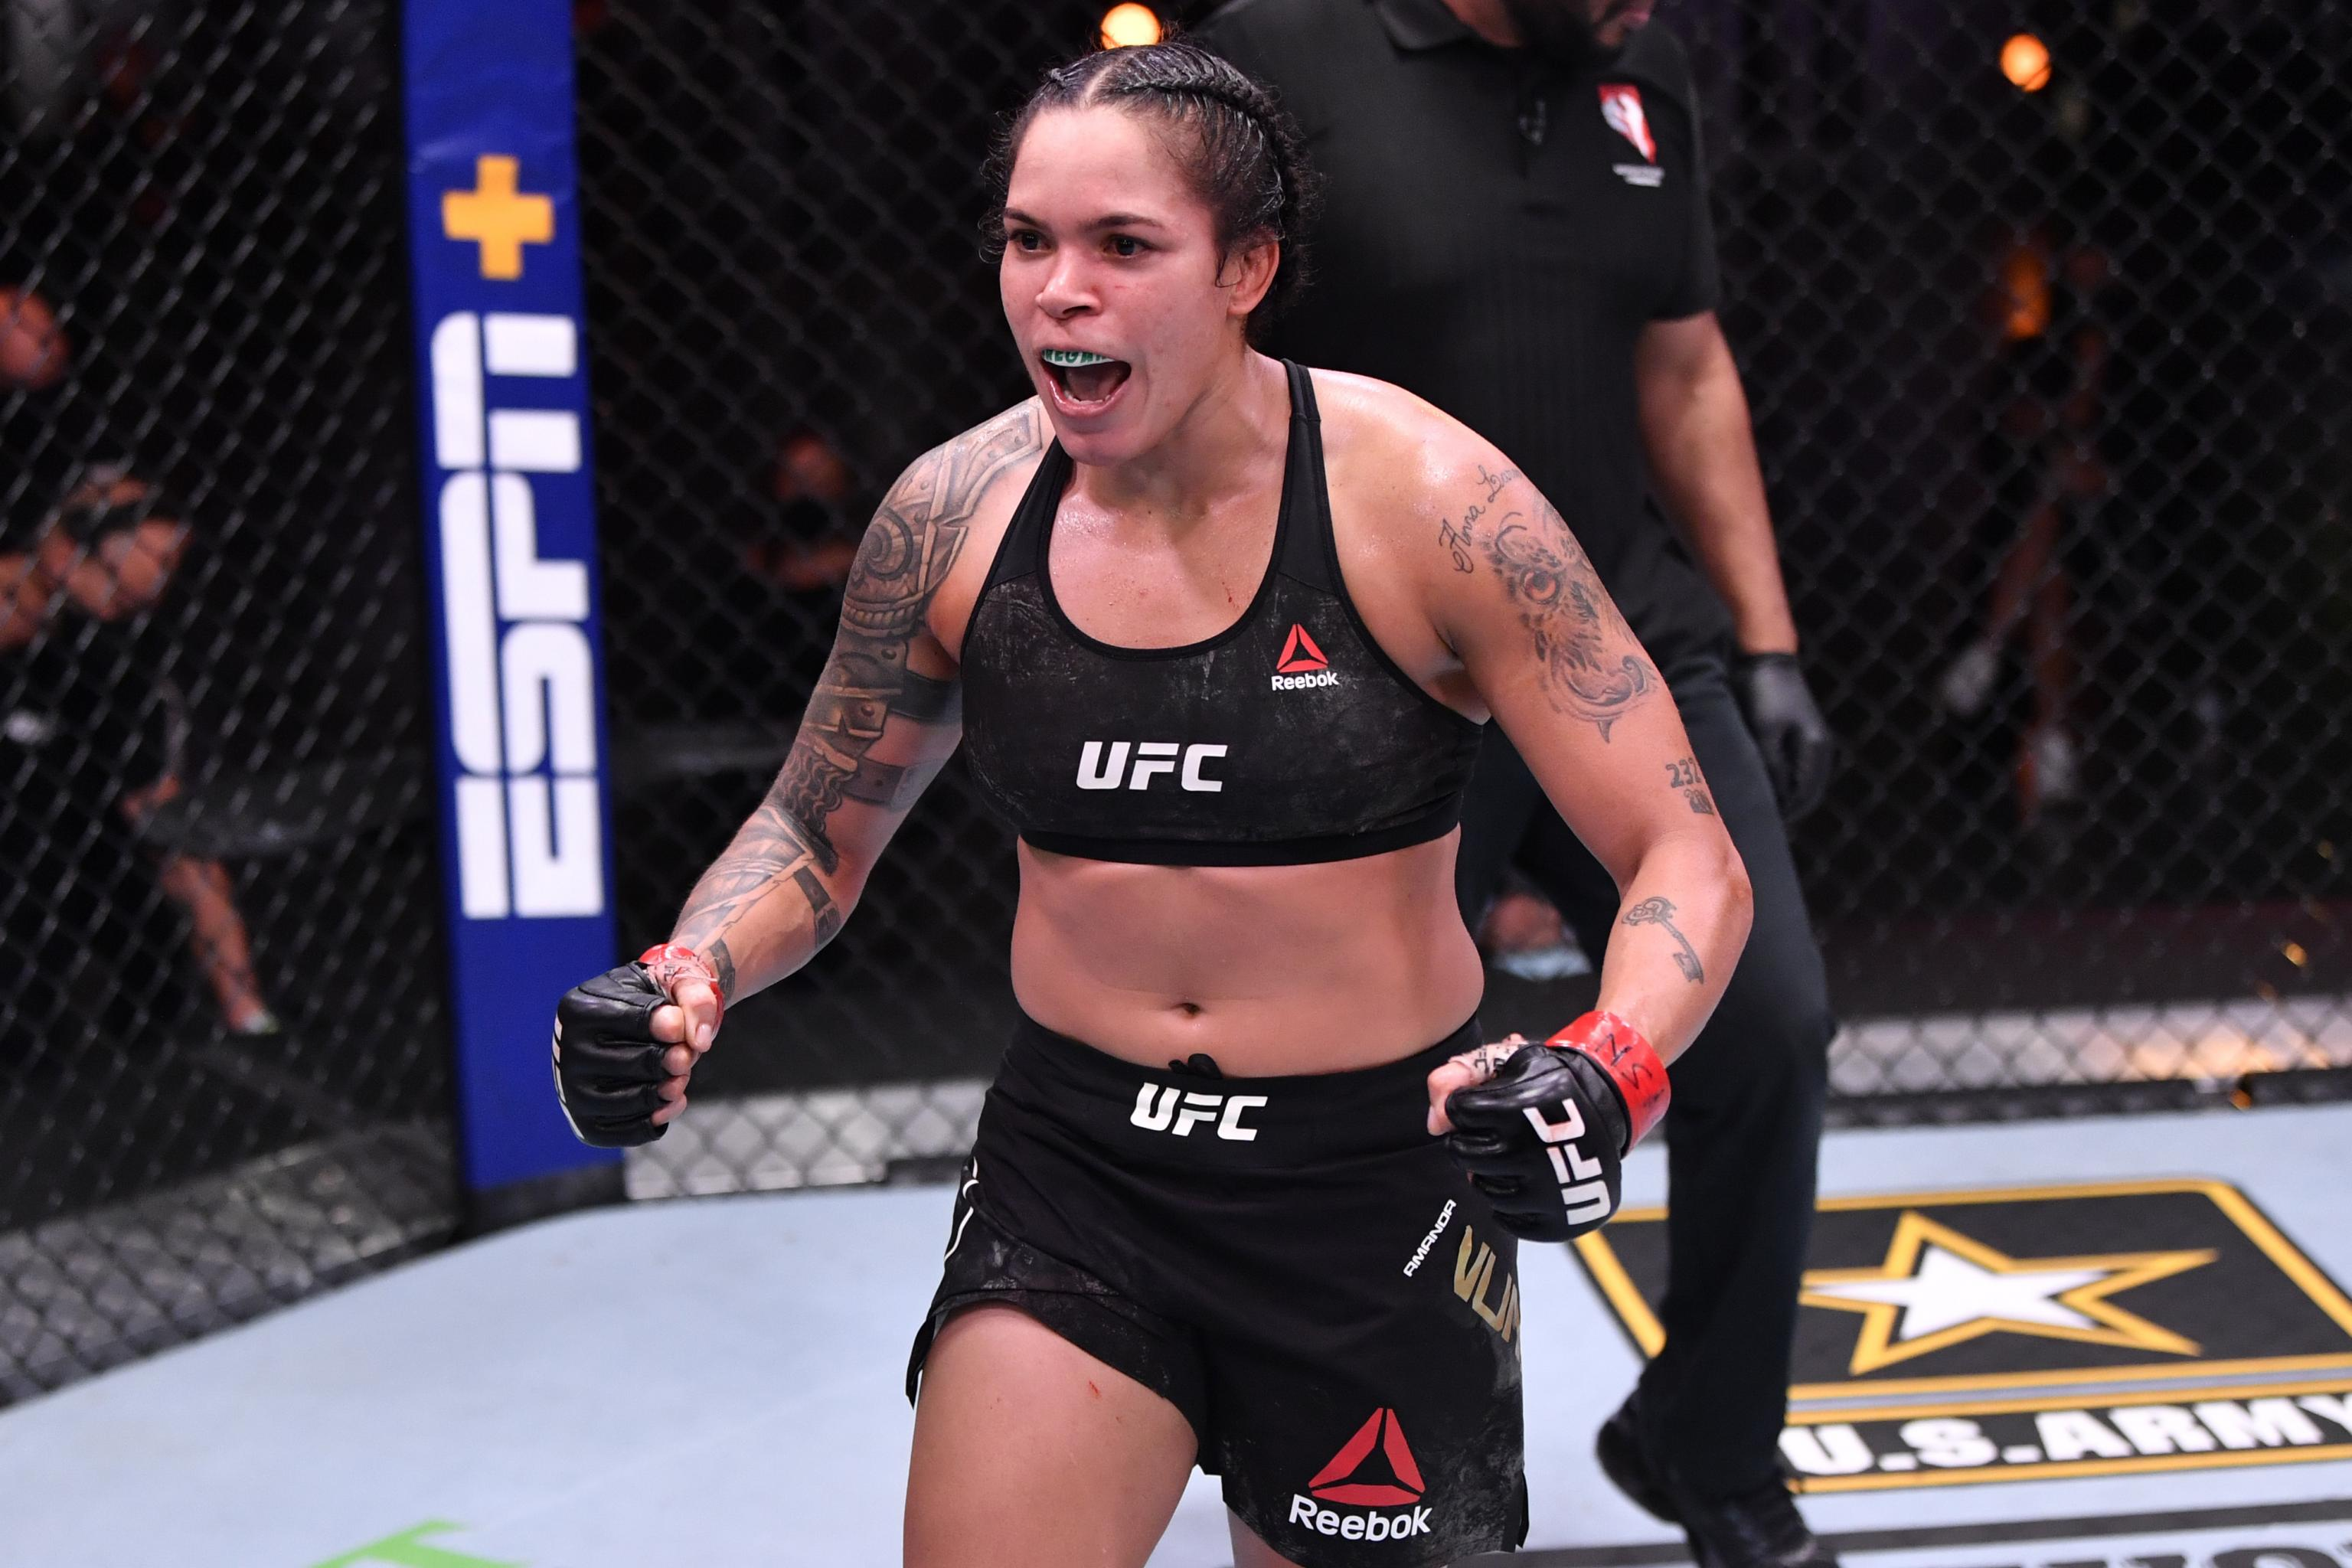 Ufc 250 Results Amanda Nunes Win Cody Garbrandt Knockout Highlight Main Card Bleacher Report Latest News Videos And Highlights